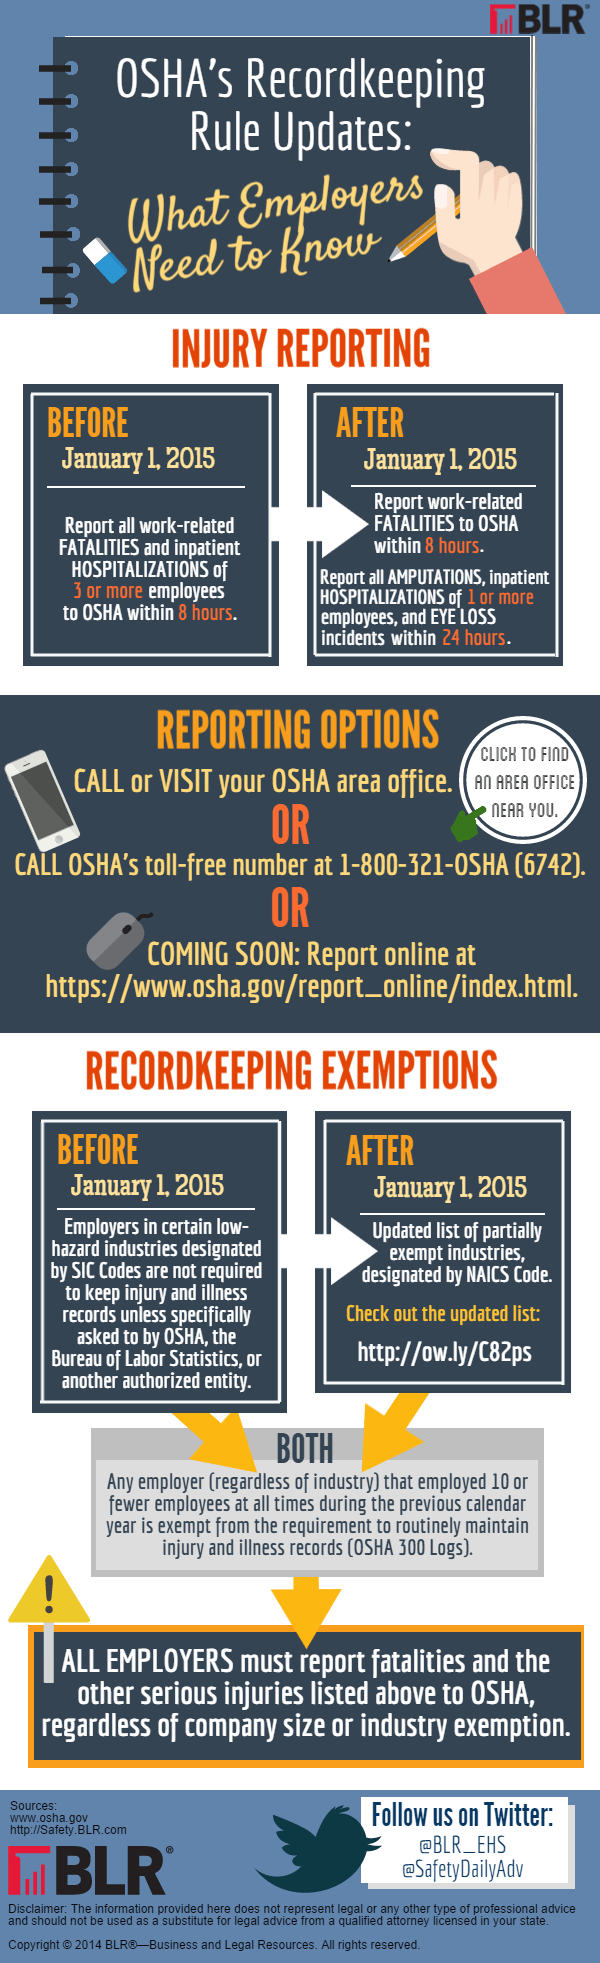 OSHA's Recordkeeping Rule Updates: What Employers Need to Know